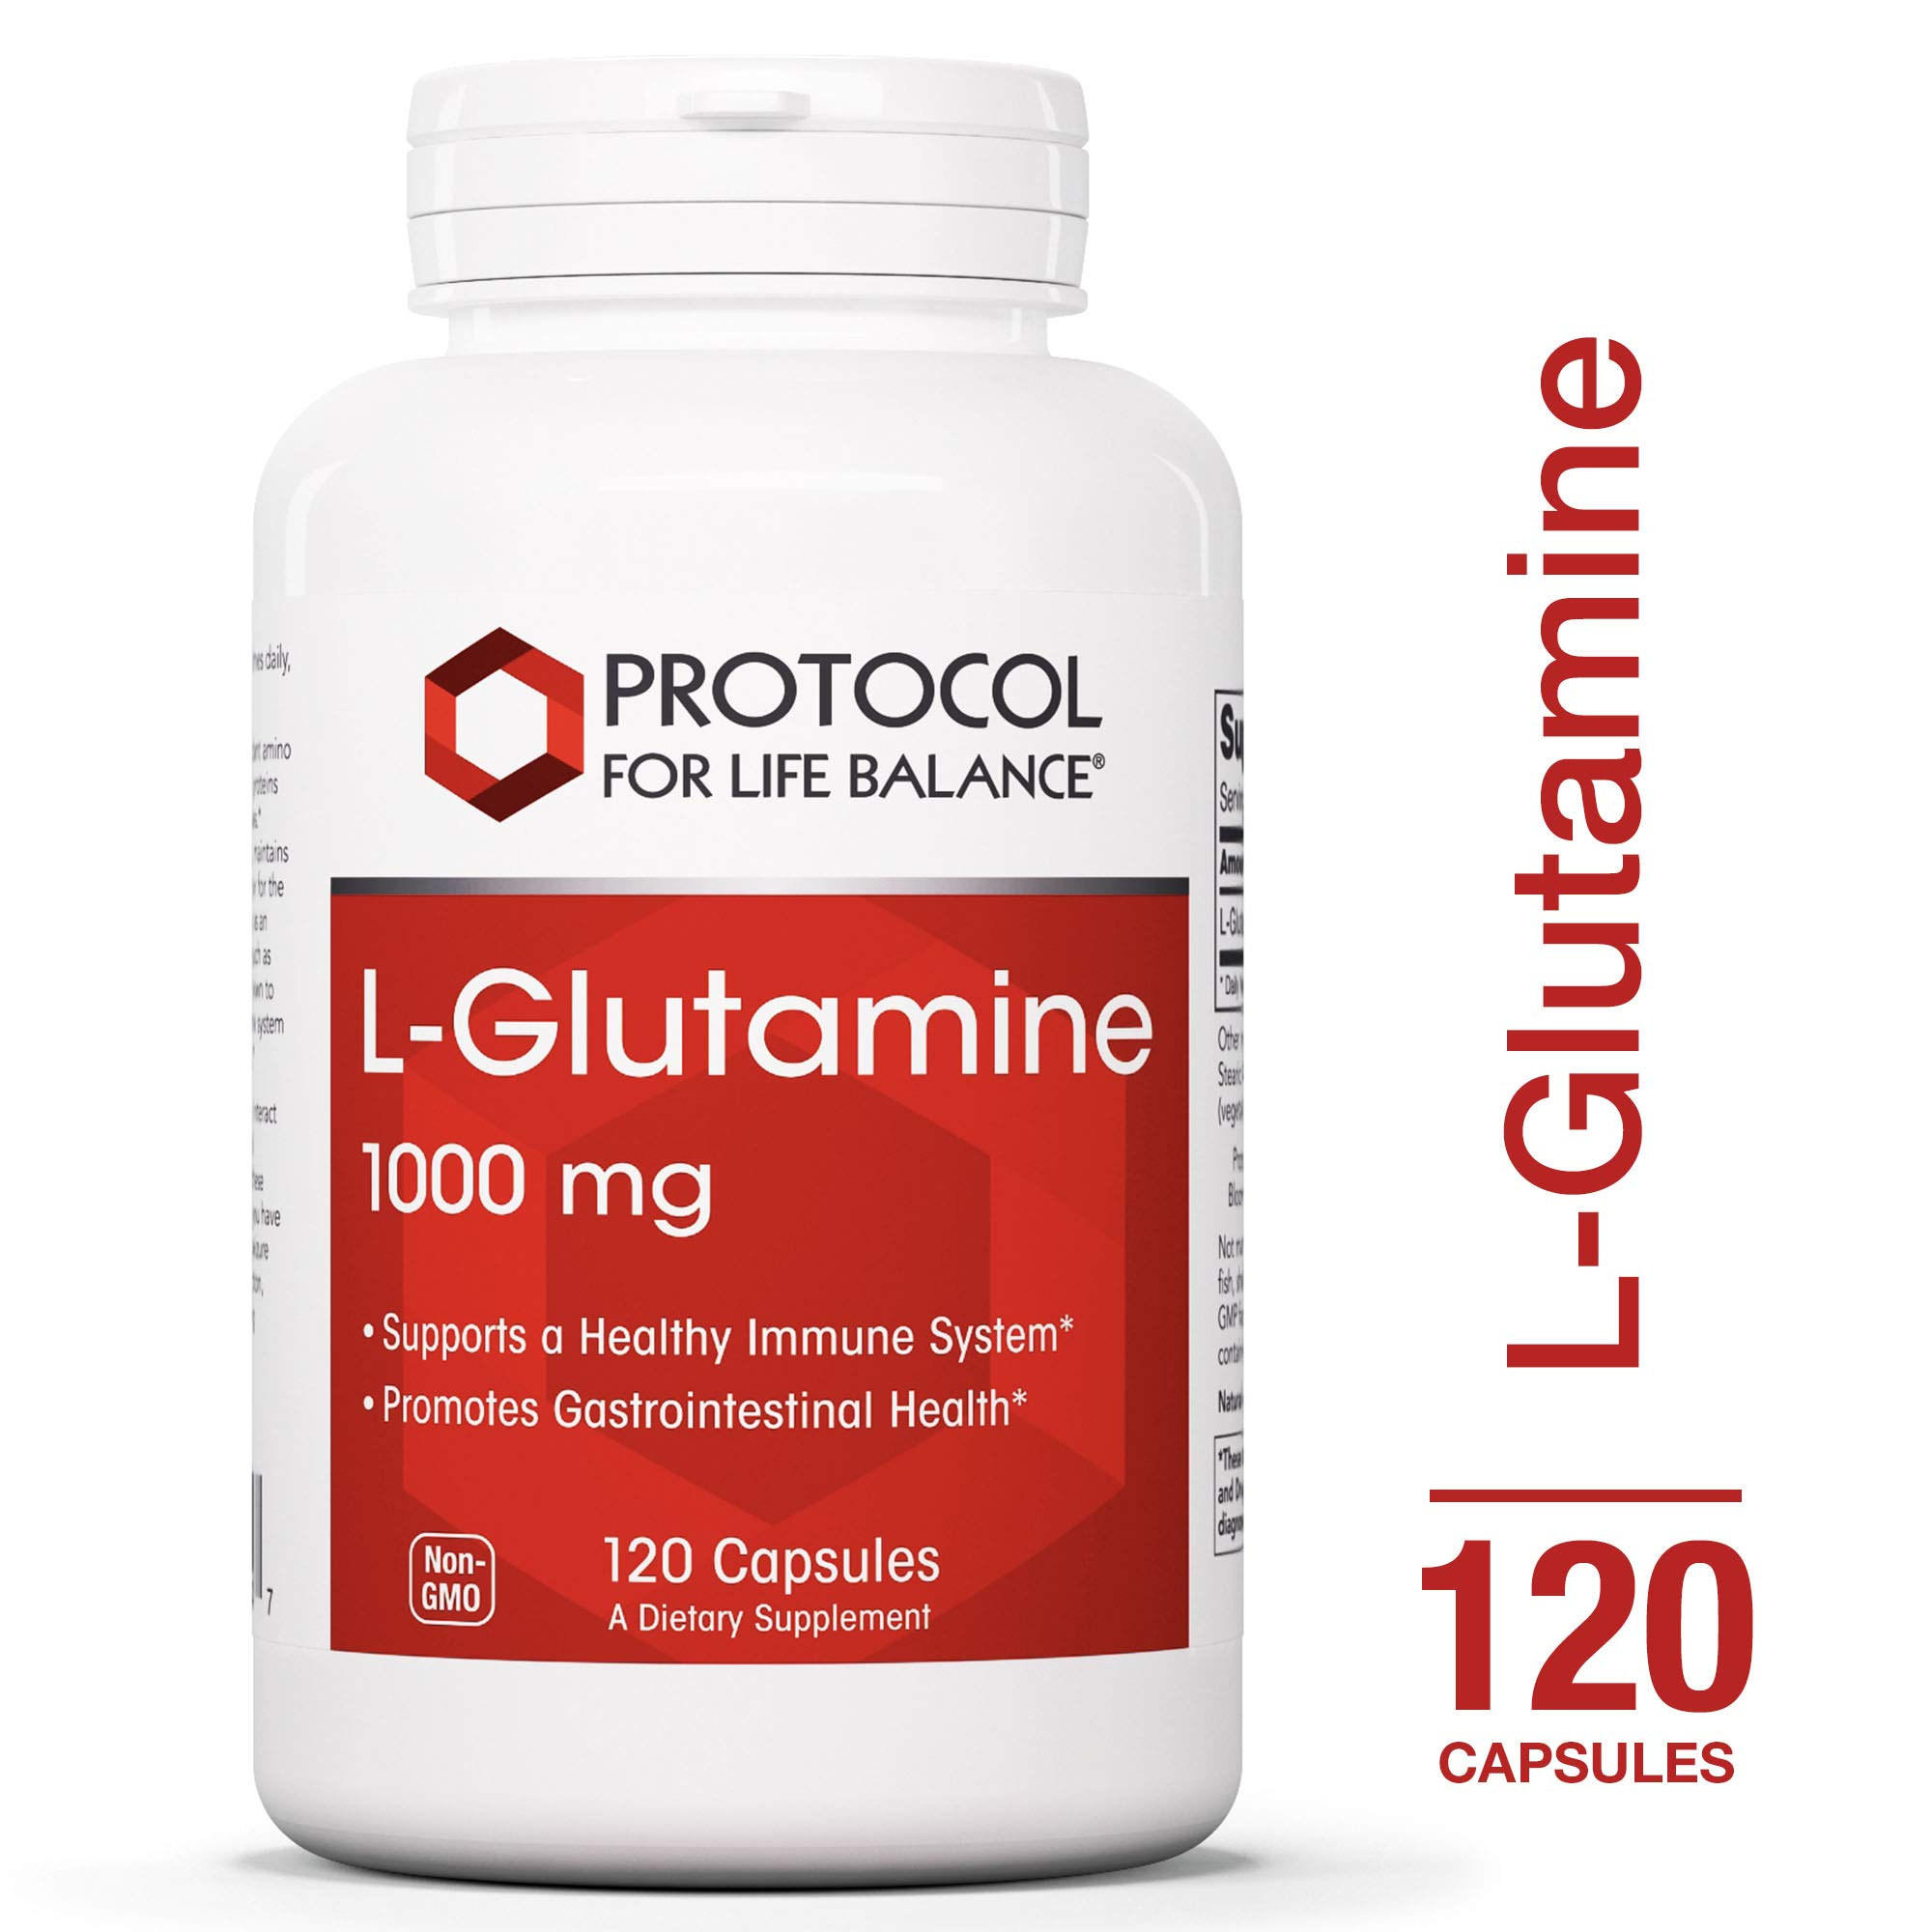 Protocol For Life Balance - L-Glutamine 1000 mg - Supports a Healthy Immune System and Gastro-Intestinal Health while Aiding Exercise Recovery - 120 Capsules by Protocol For Life Balance